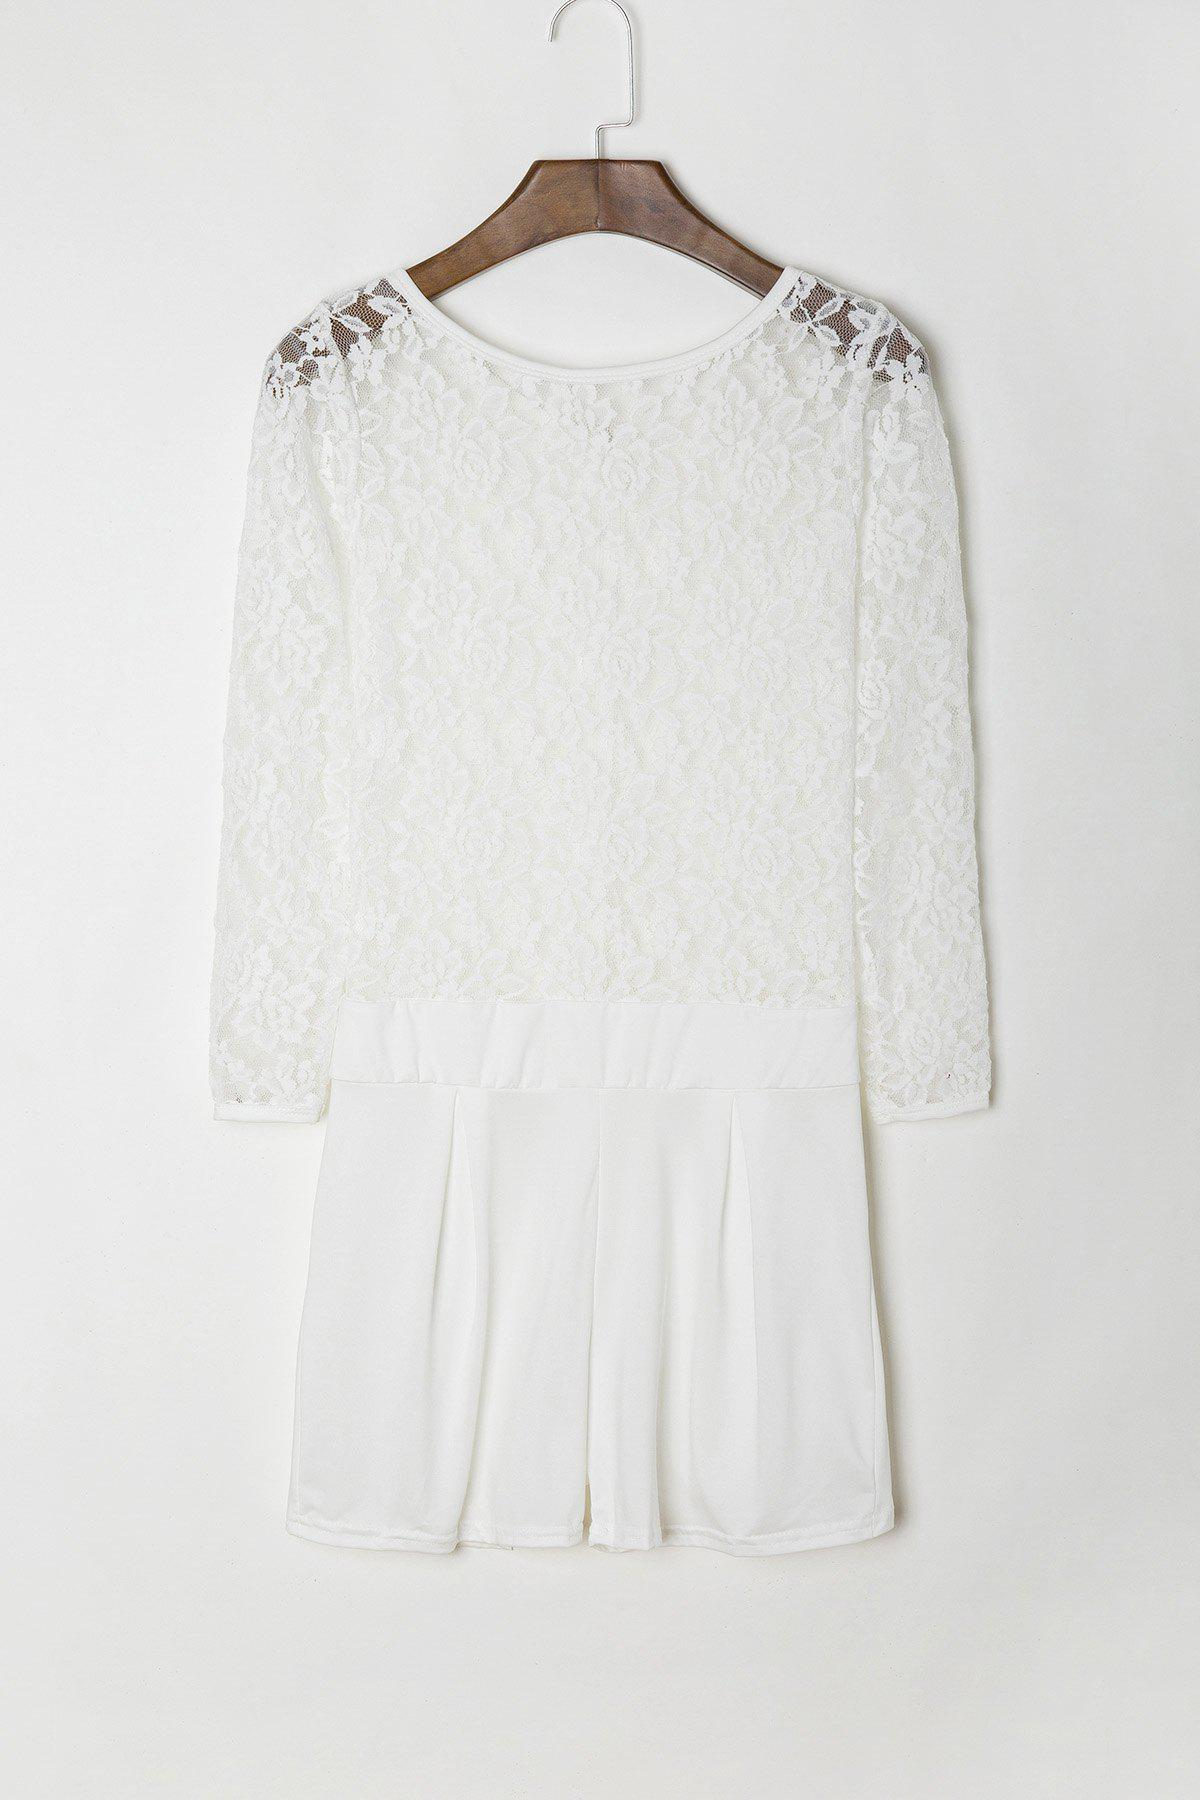 Stylish See-Through Round Neck Lace Spliced Long Sleeve Romper For Women - WHITE XL